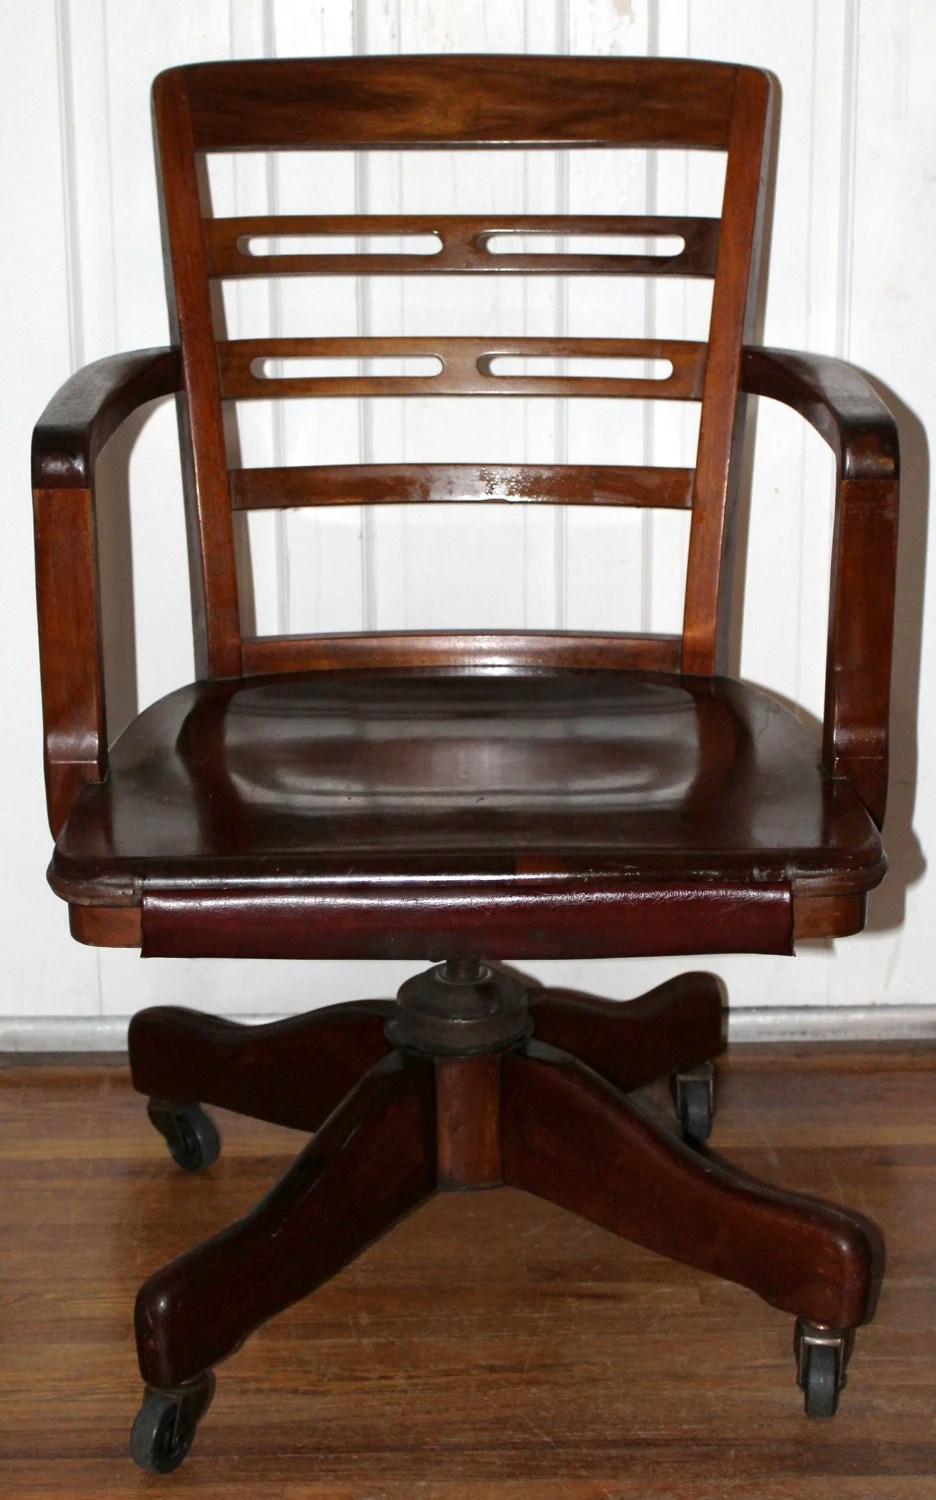 Vintage Clark Amp Gibby Banker Chair By Johnson Chair Co Solid